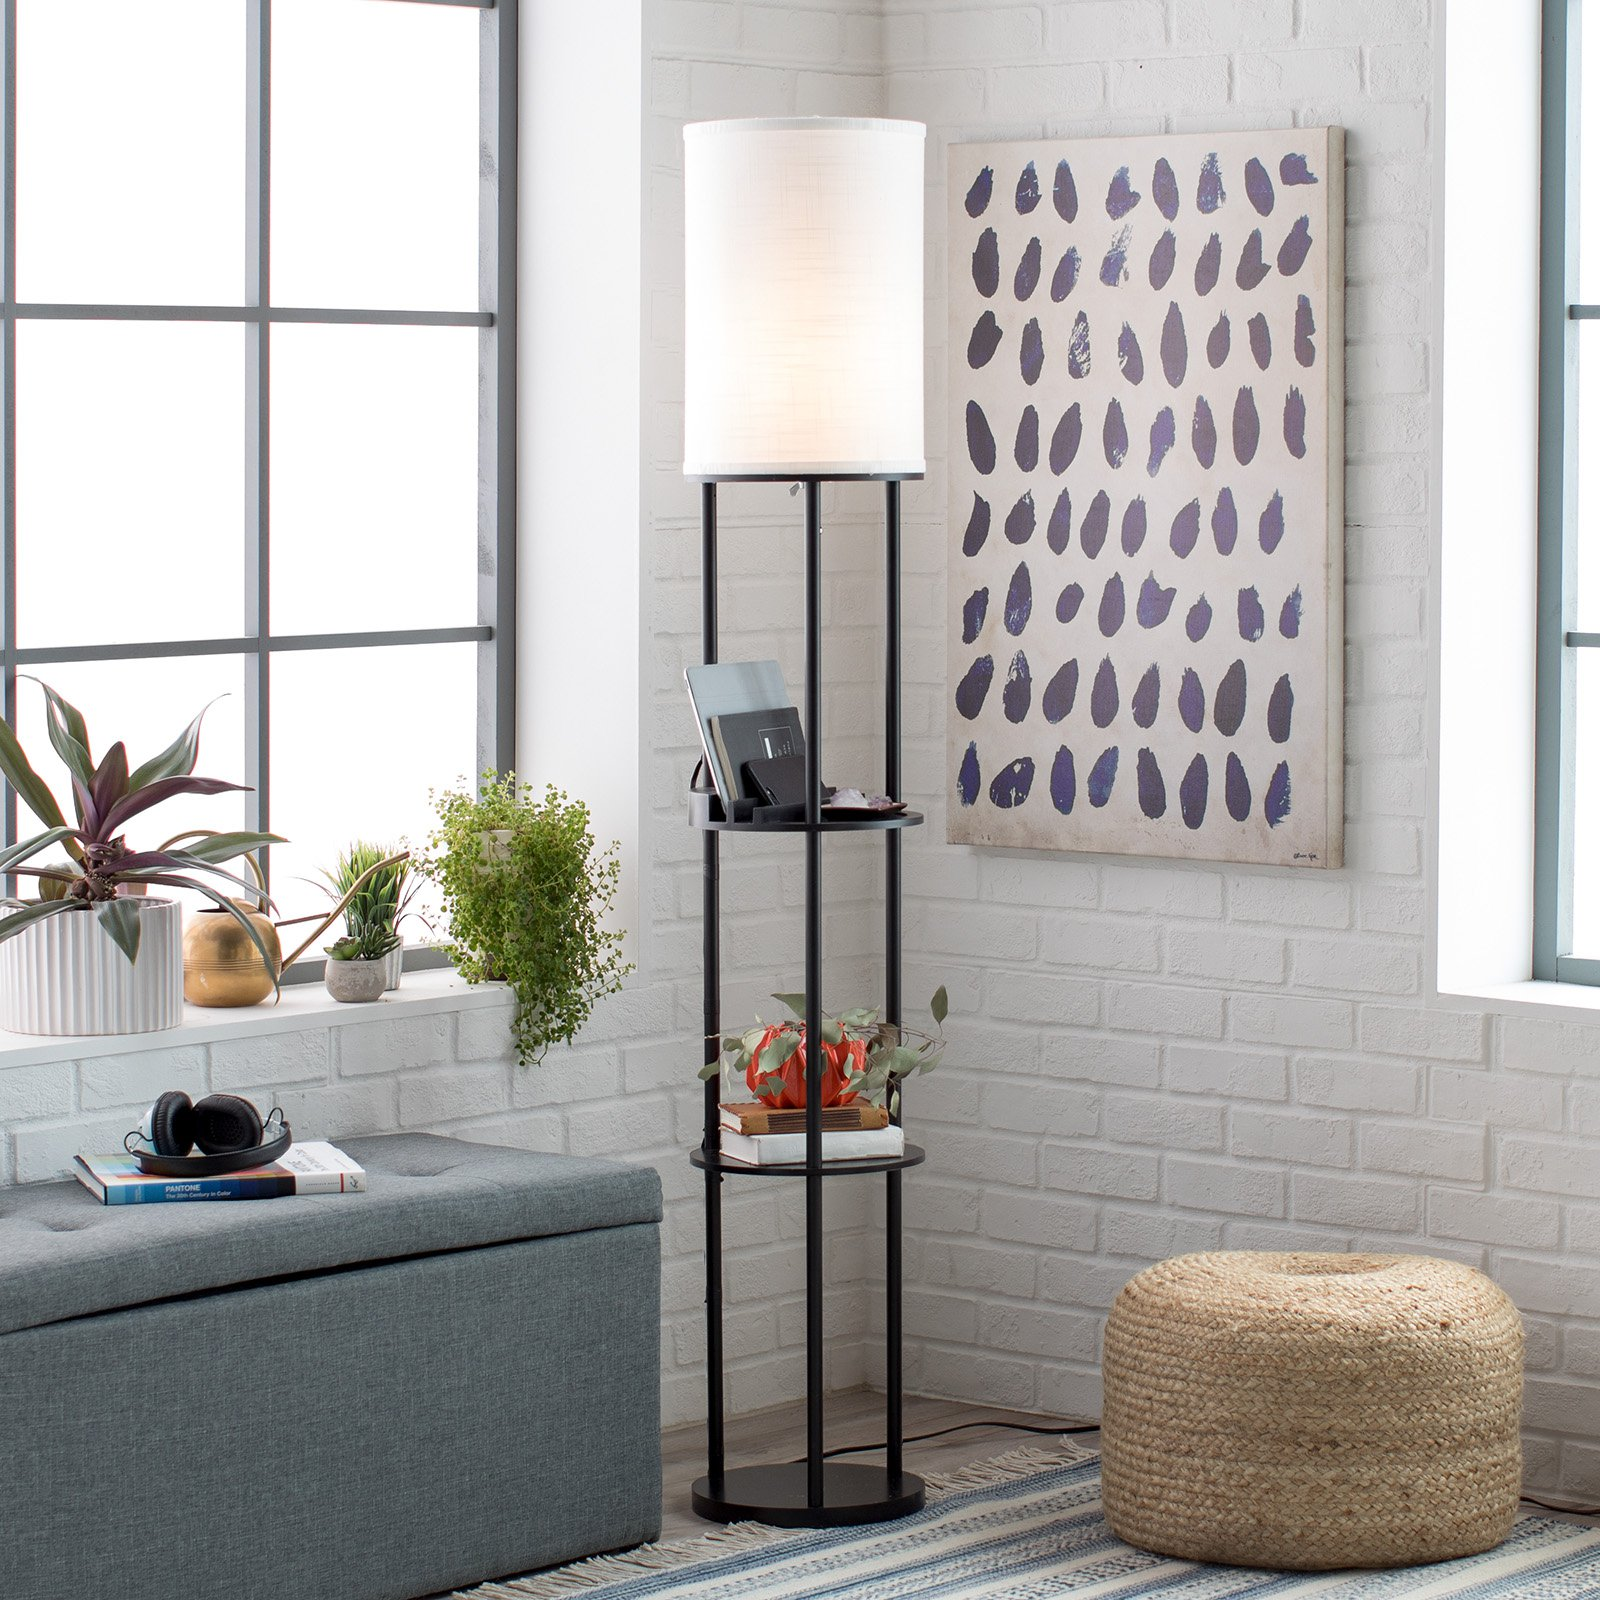 Adesso Charging Station Shelf Floor Lamp by